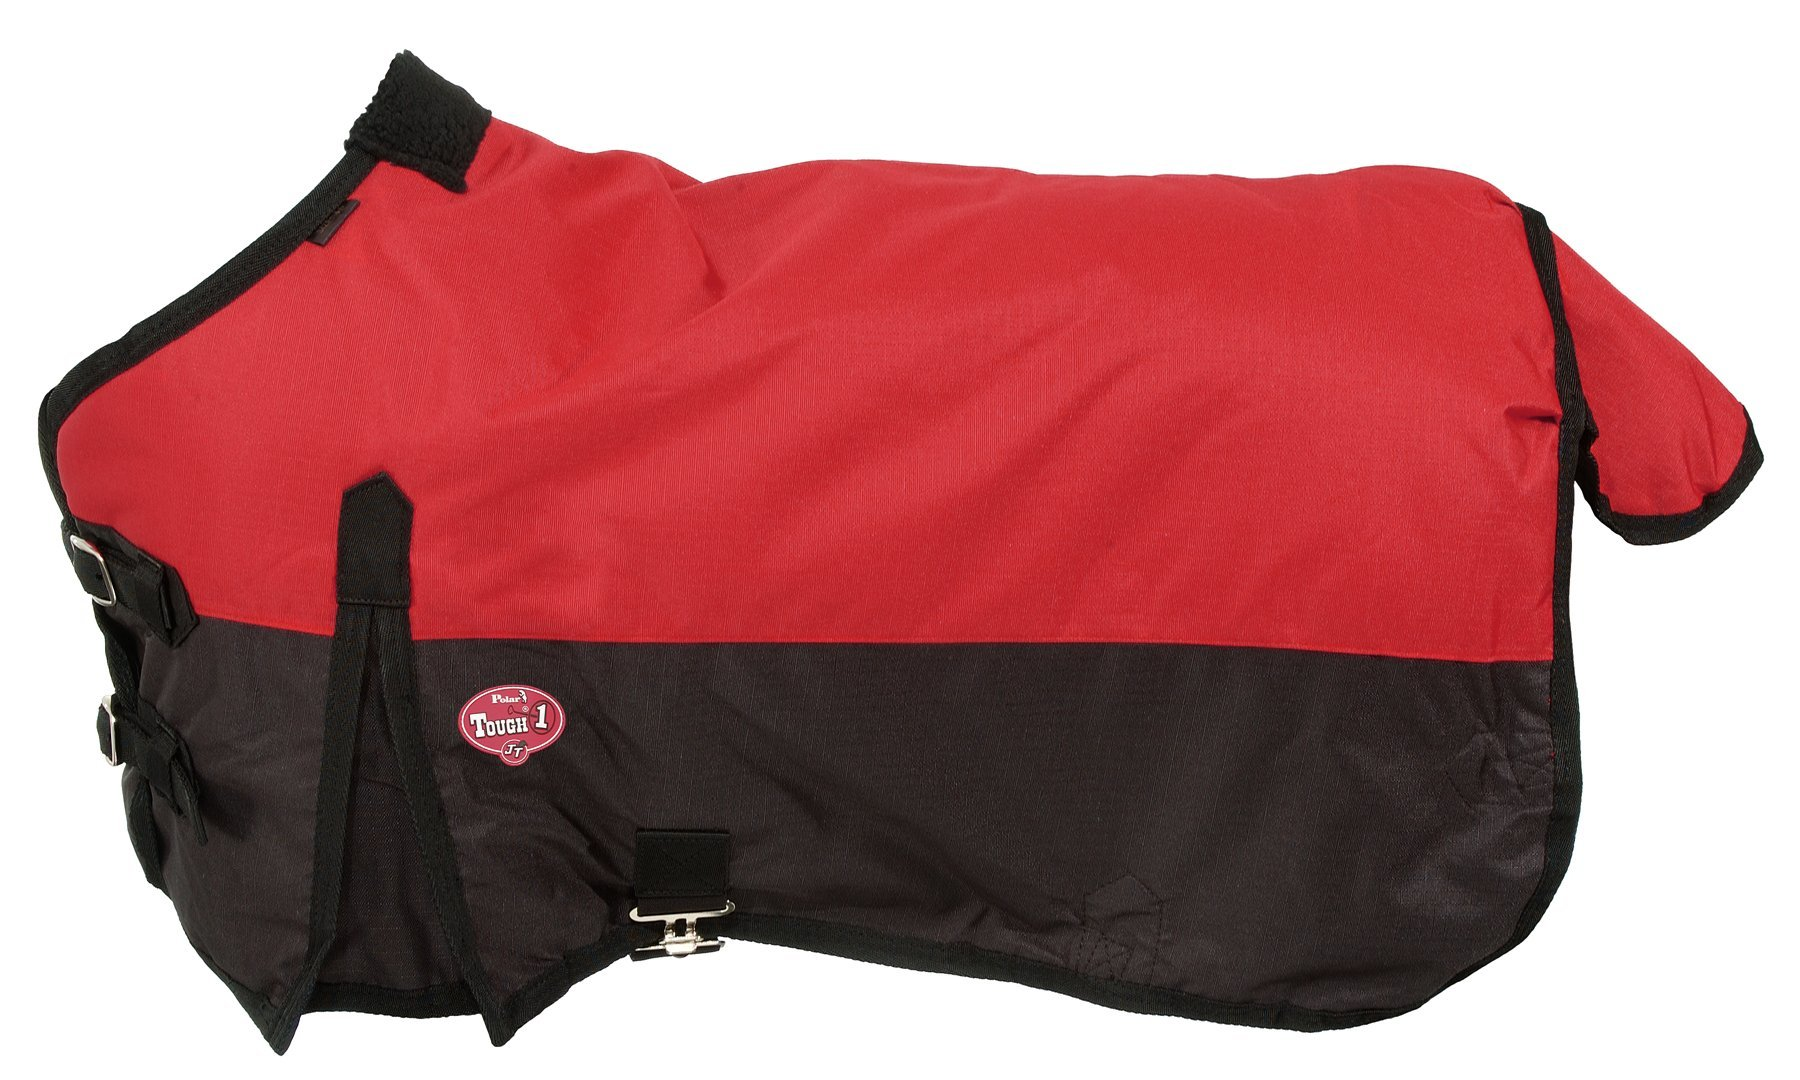 Tough 1 600D Waterproof Poly Miniature Turnout Blanket, Red, 48''